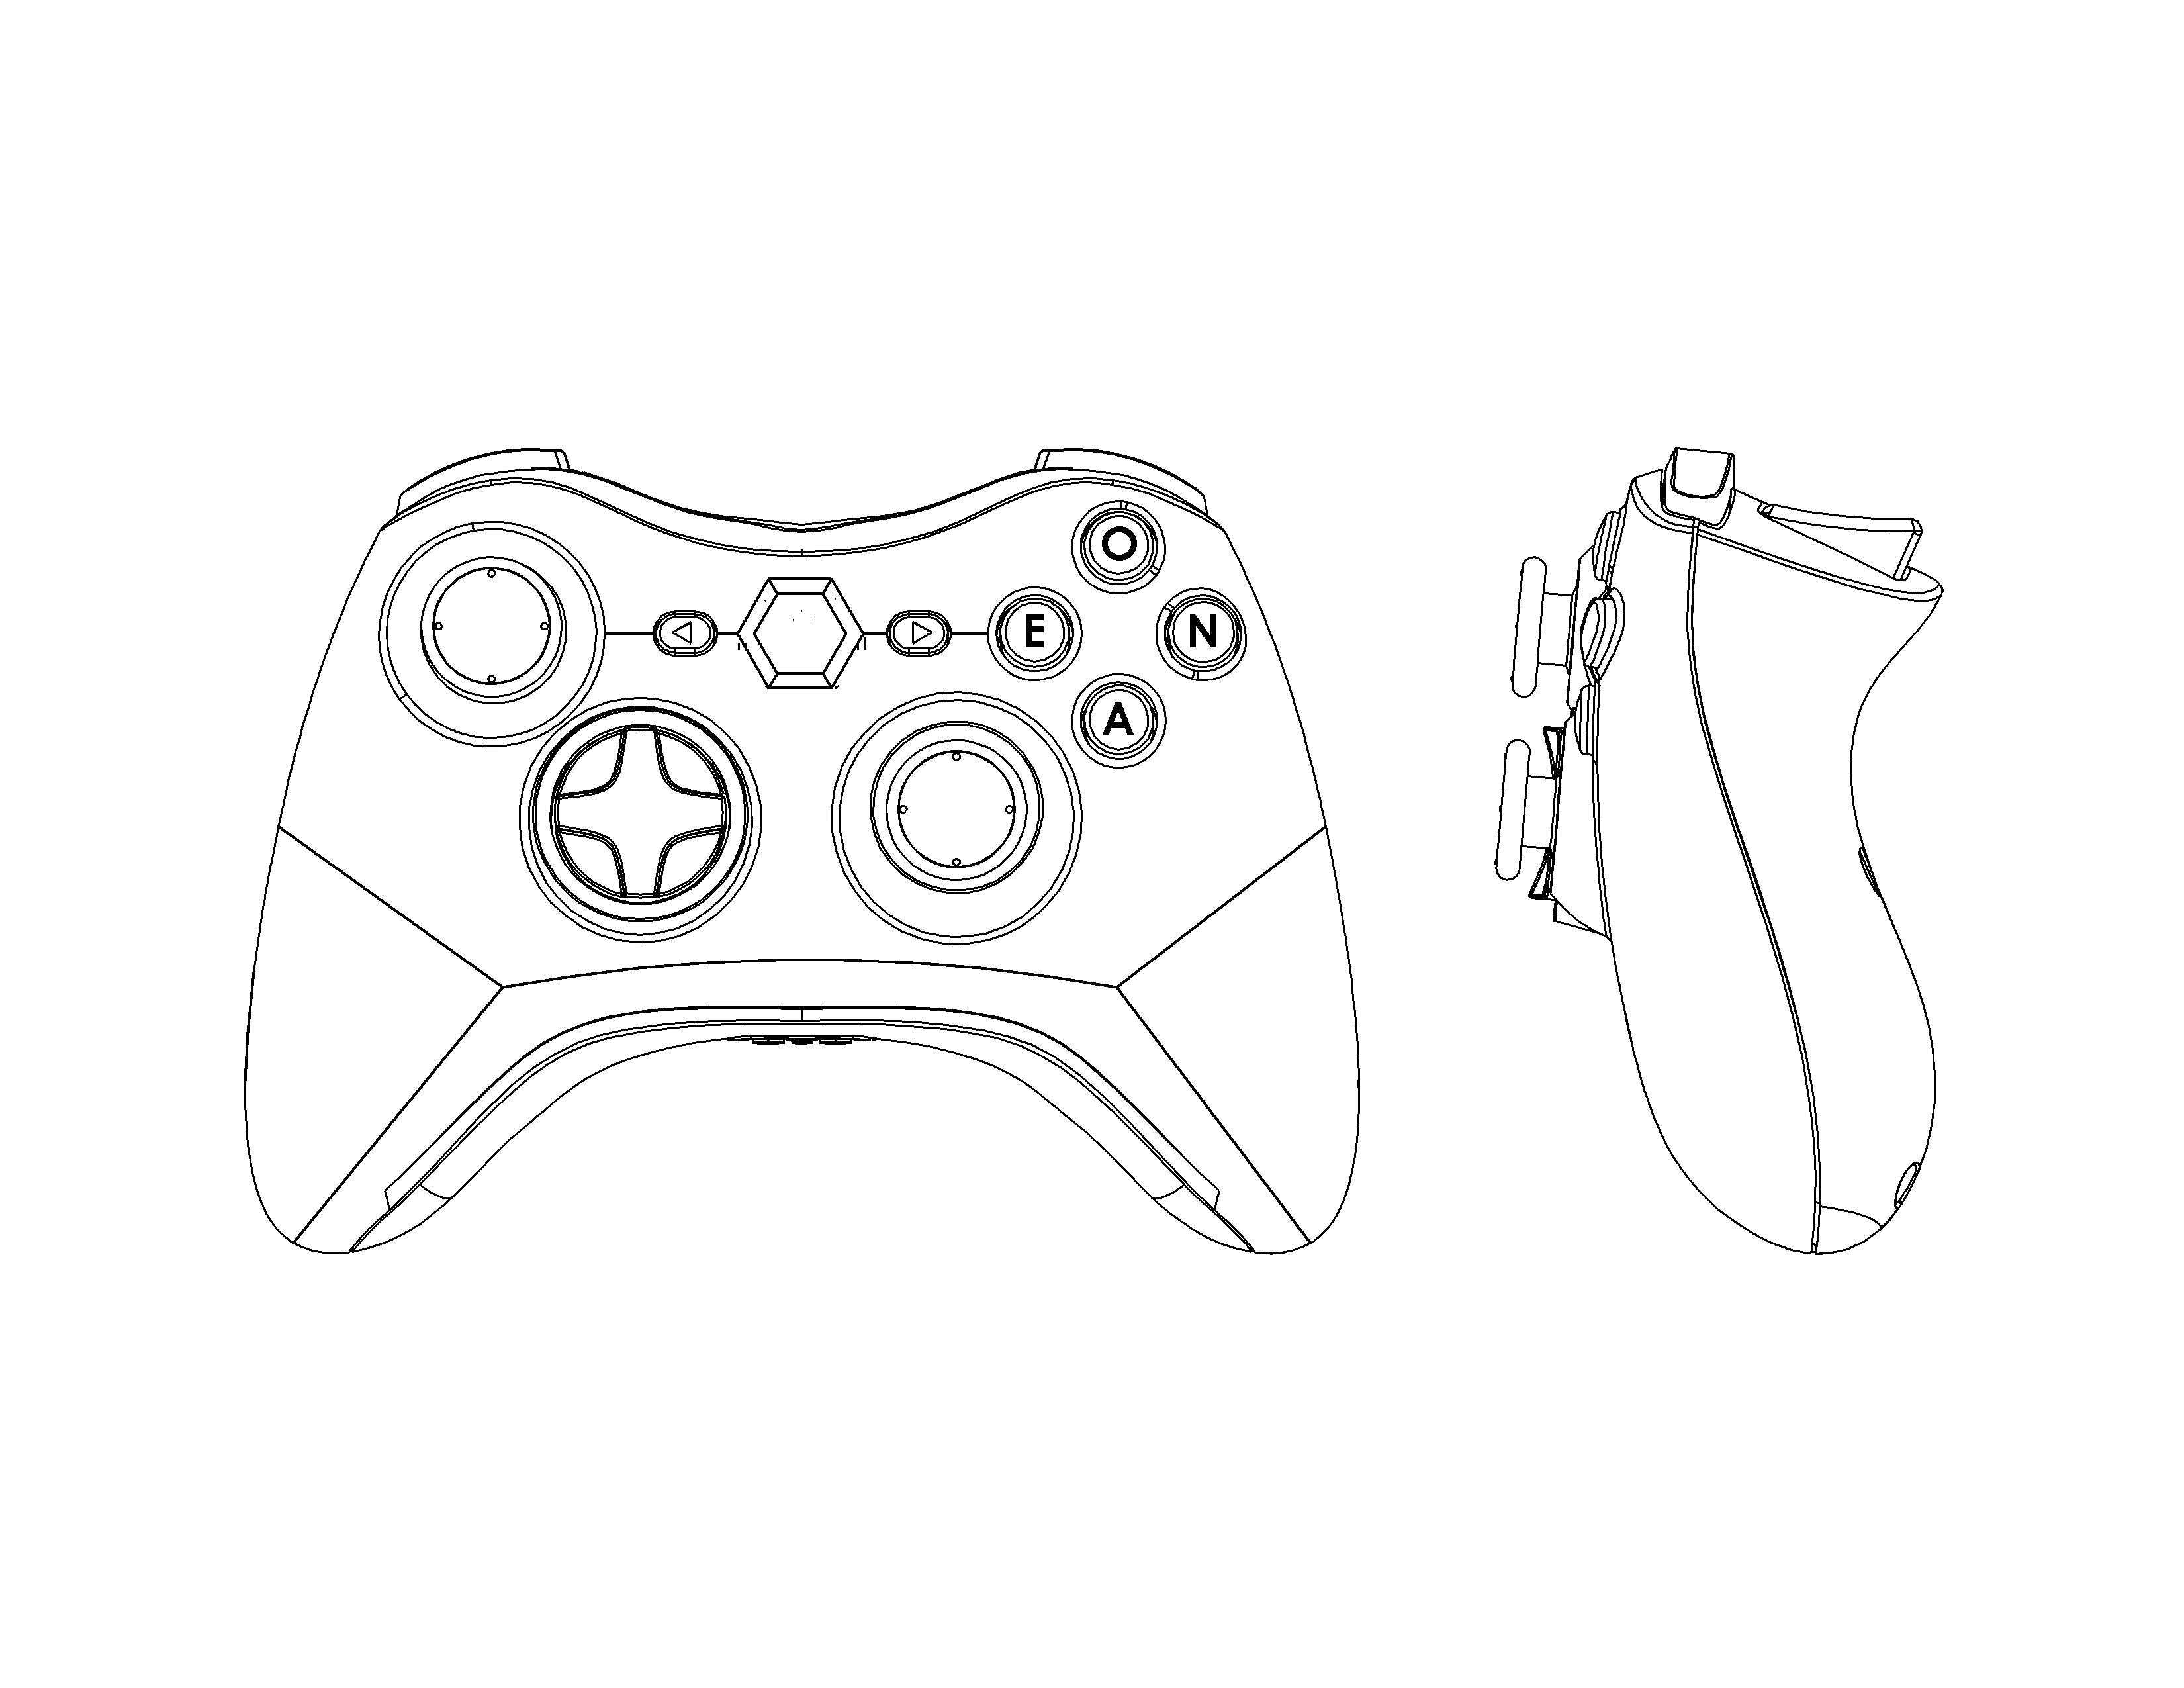 xbox 360 controller drawing at getdrawings free for personal PS3 Controller Parts Diagram 3300x2550 controller design